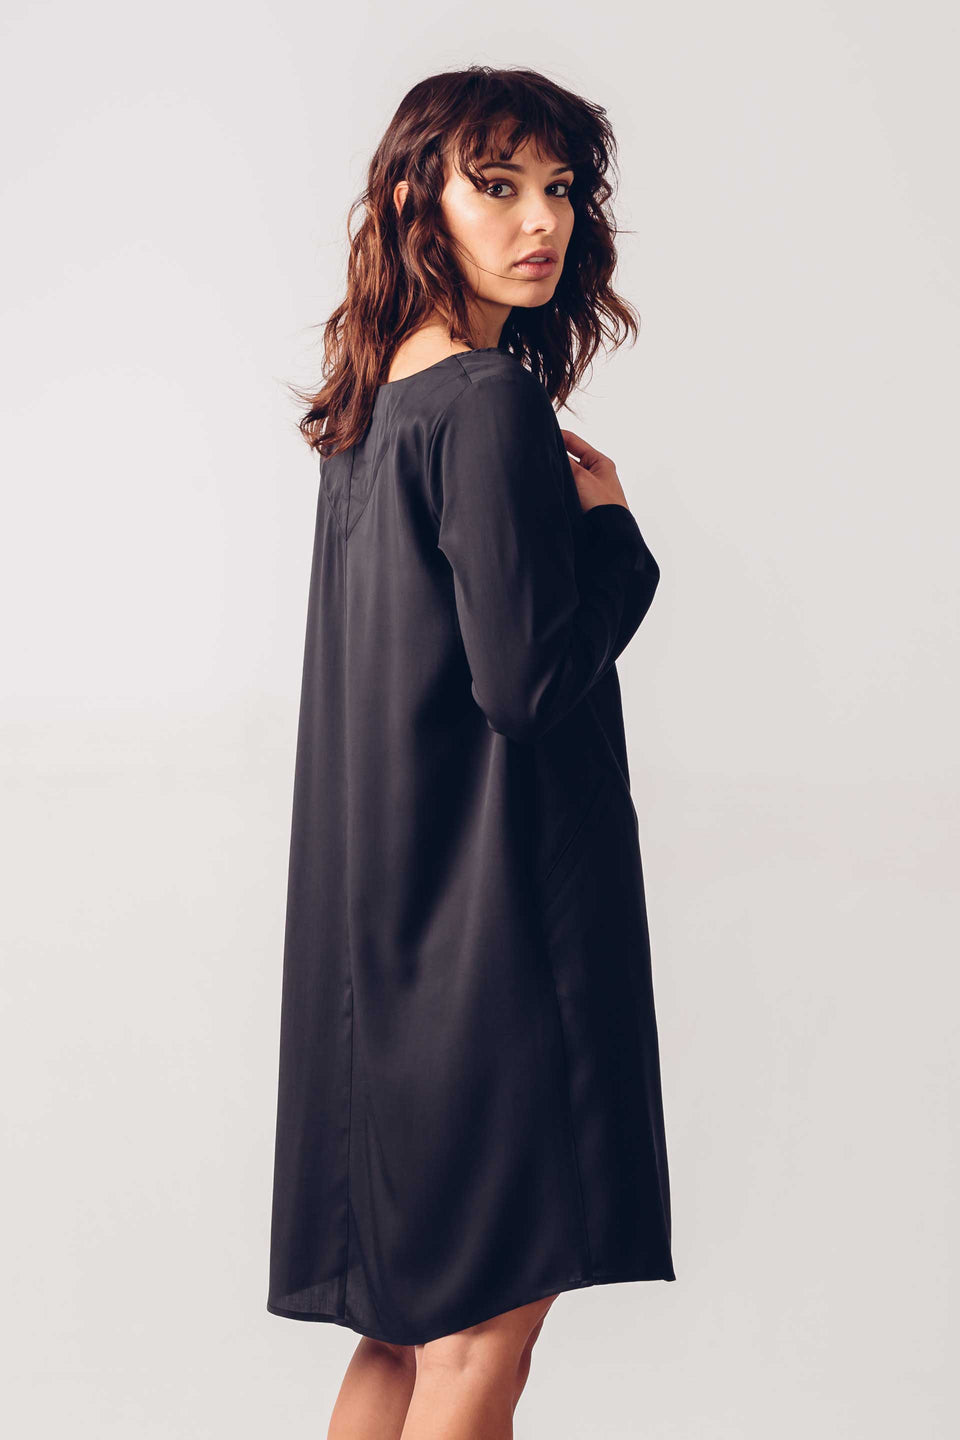 Uhabia Dress in Black